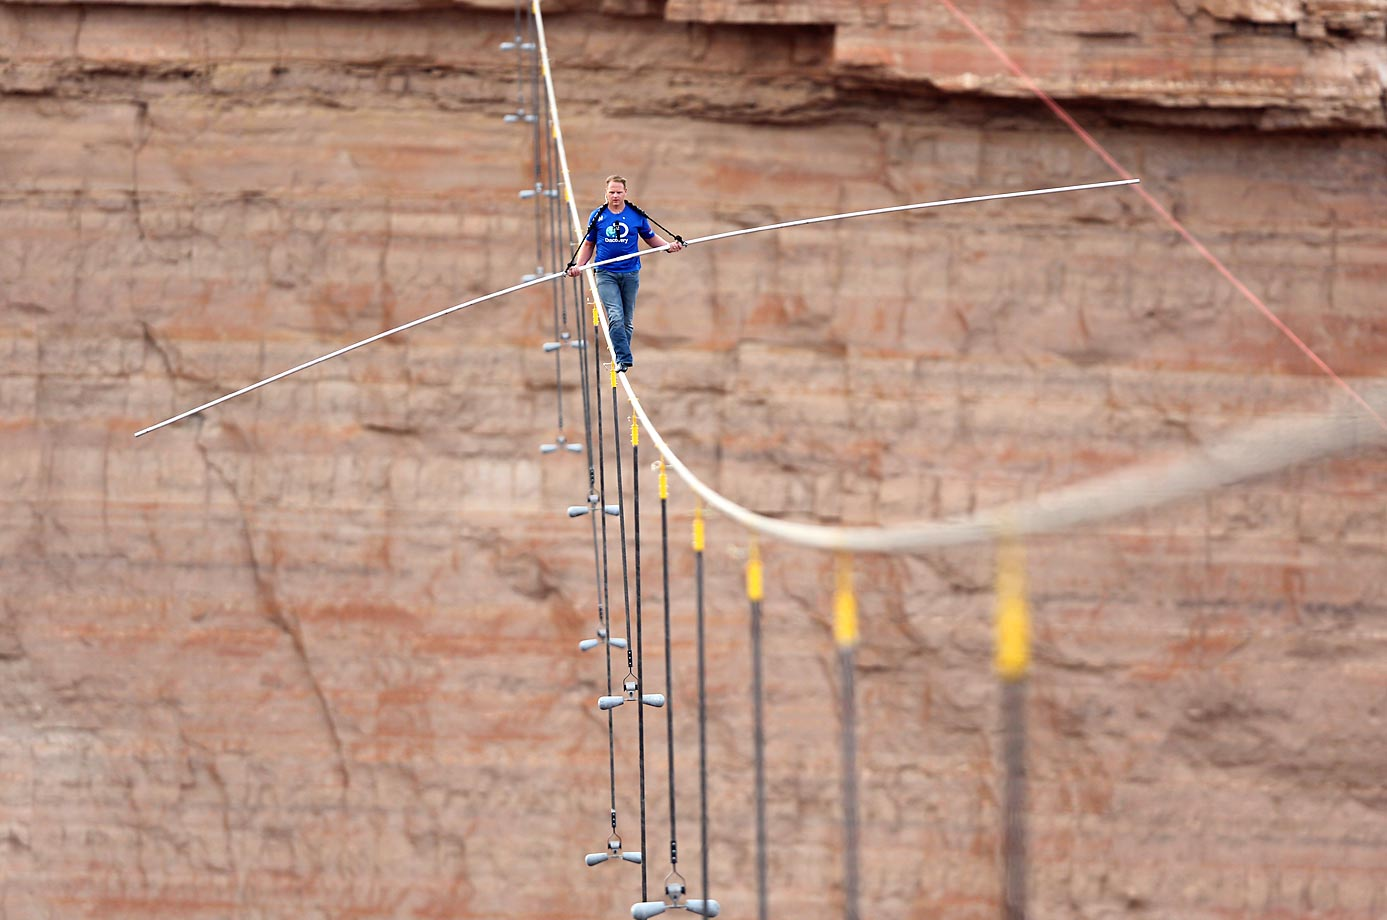 Nik Wallenda walks across a 2-inch wire 1,500 feet above the ground to cross the Grand Canyon.